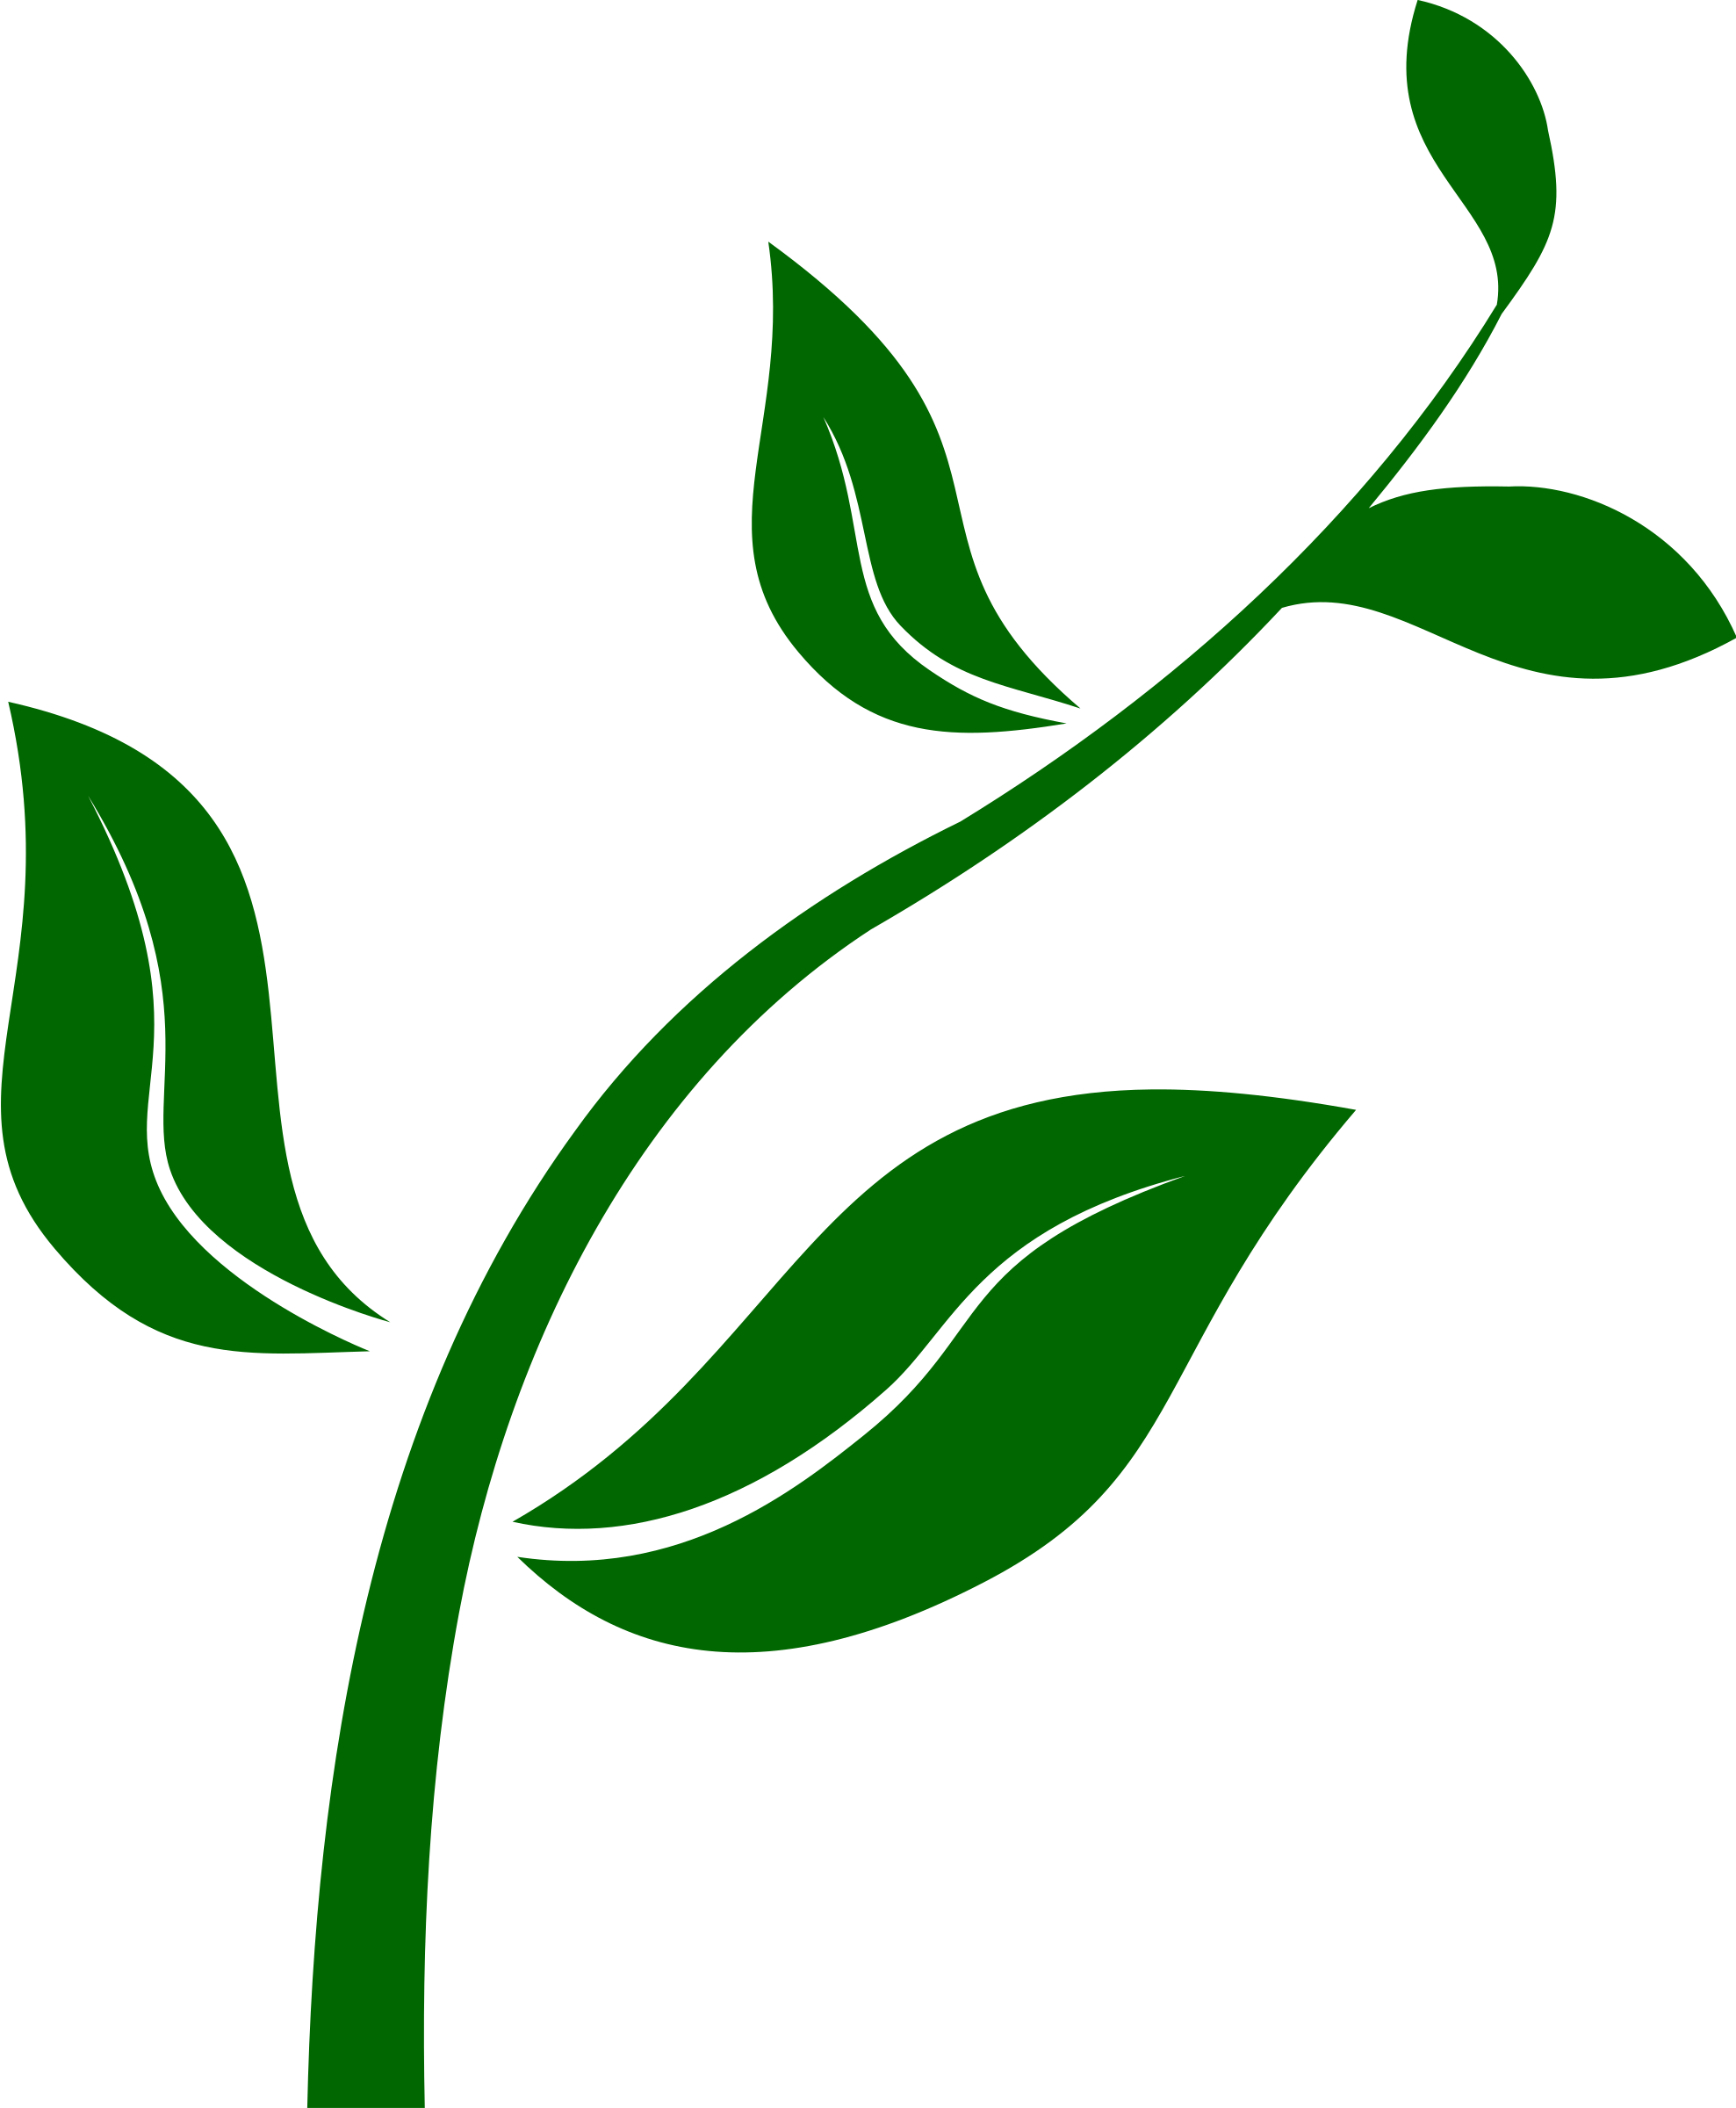 Plants clipart animated, Plants animated Transparent FREE.